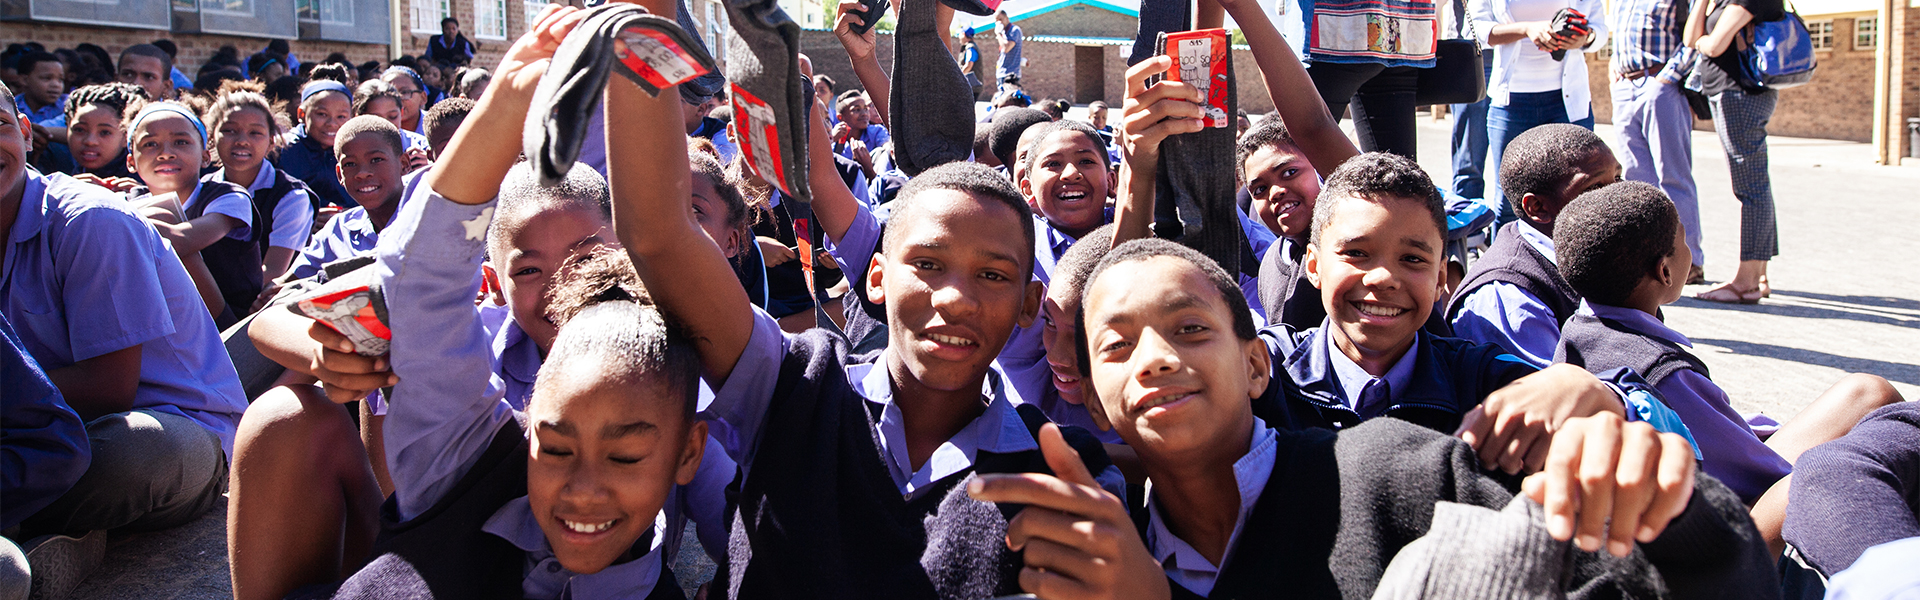 donating socks to school kids in South Africa